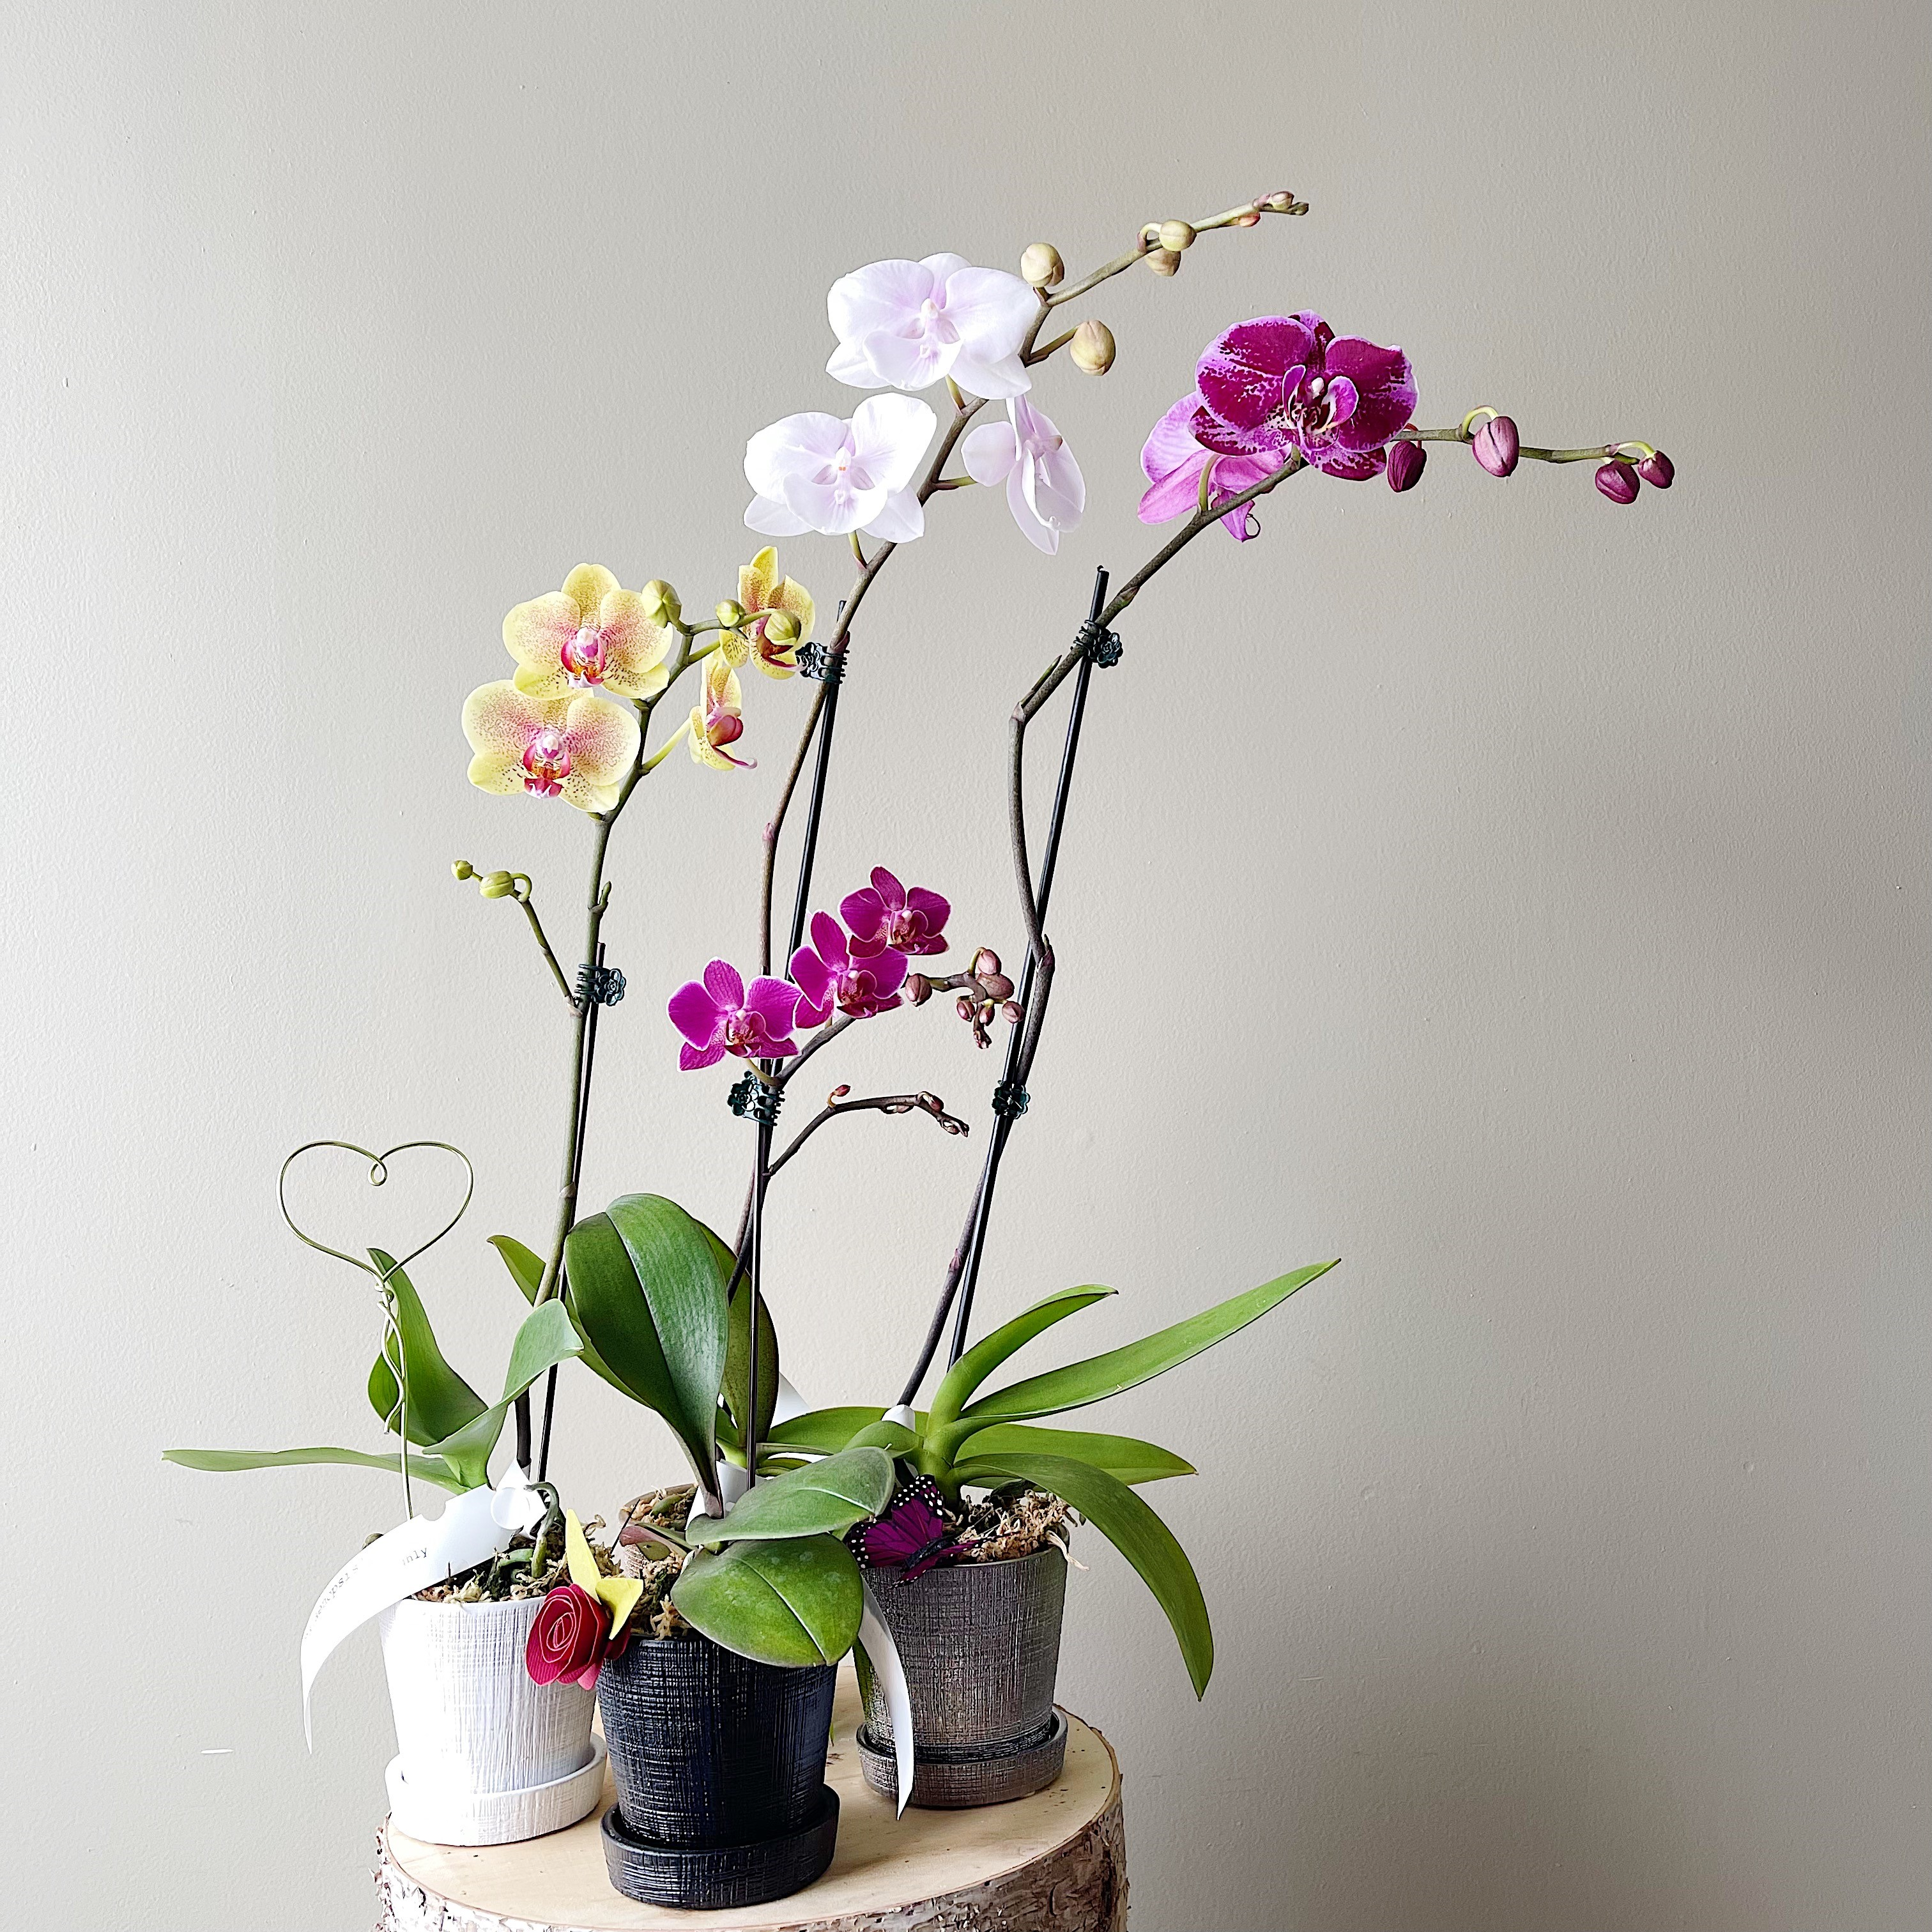 Lovely Blooming Phalaenopsis Orchid